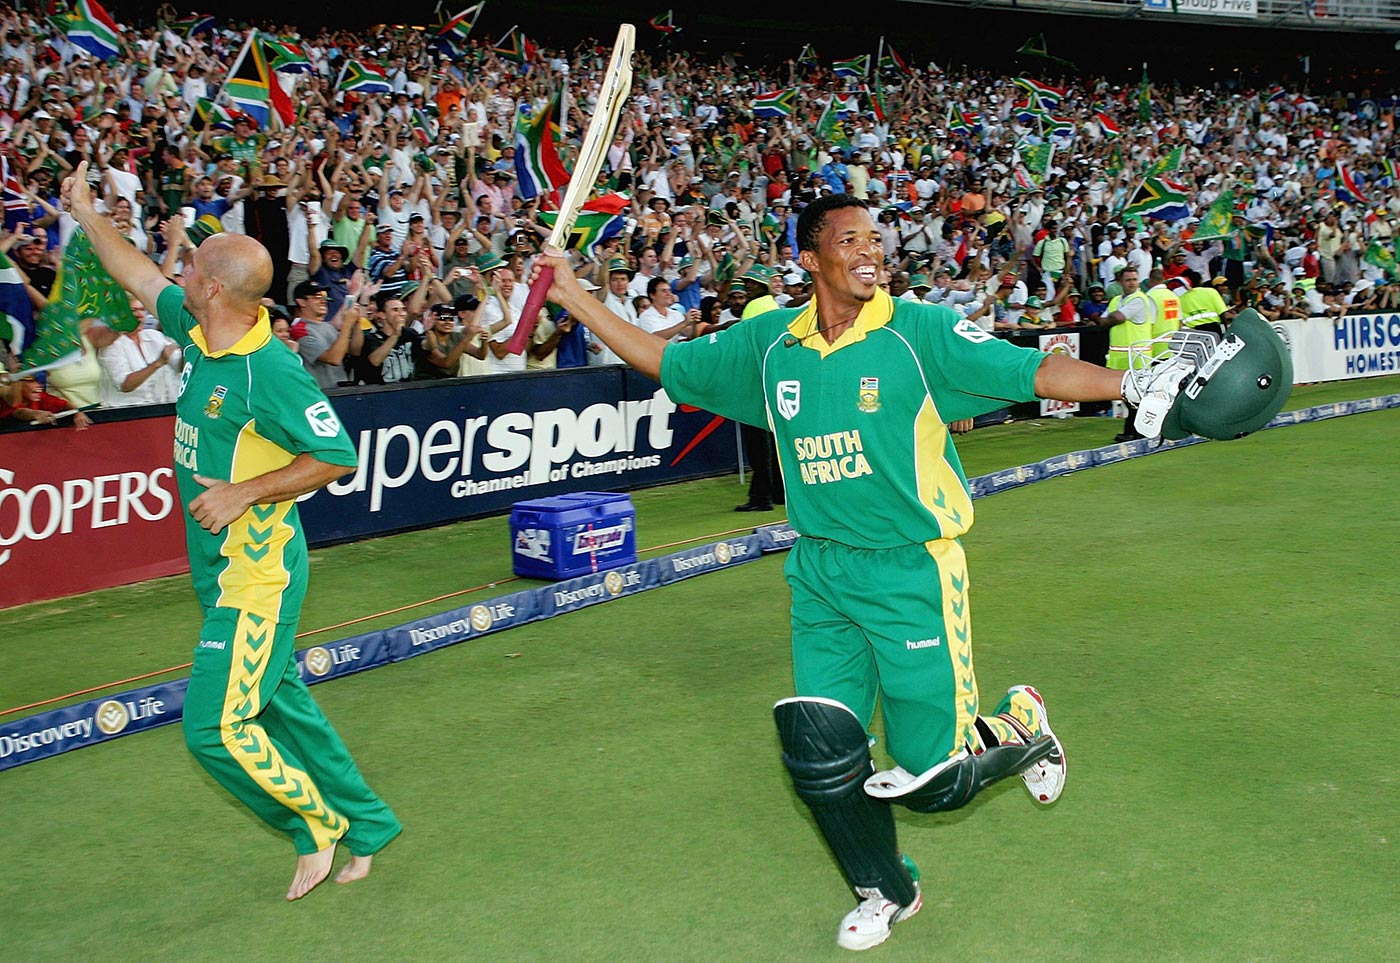 What, me worry? Makhaya Ntini does a victory lap after the 438 match